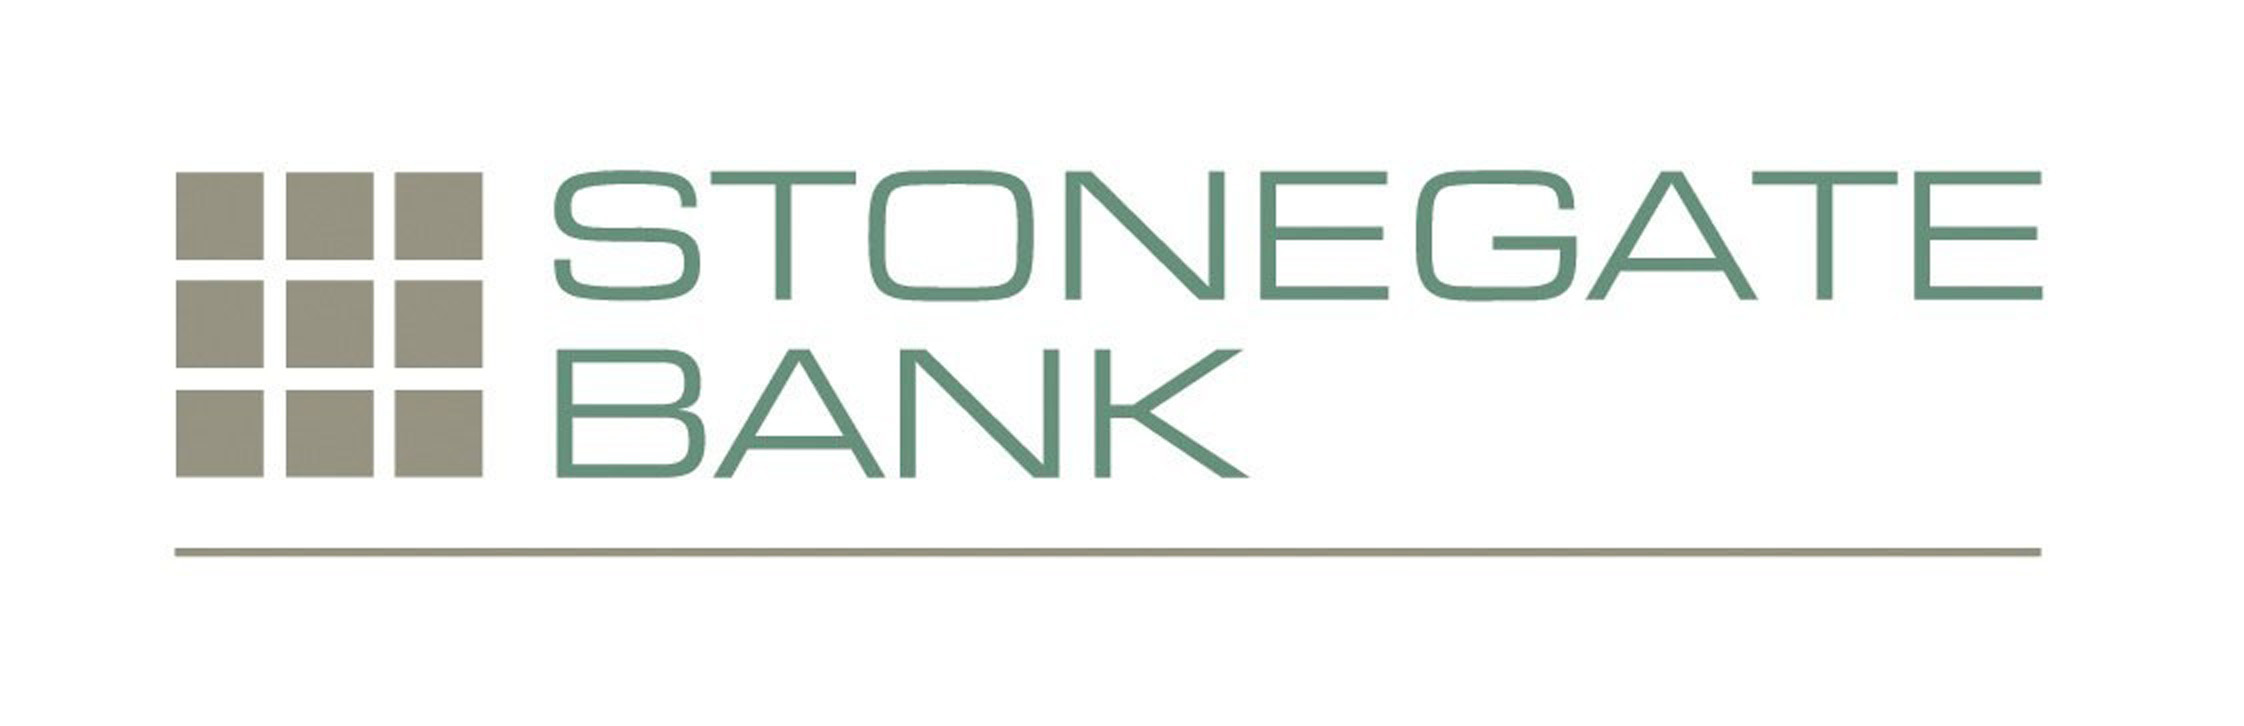 stonegate-bank-sgbk-lifted-to-hold-at-zacks-investment-research.jpg